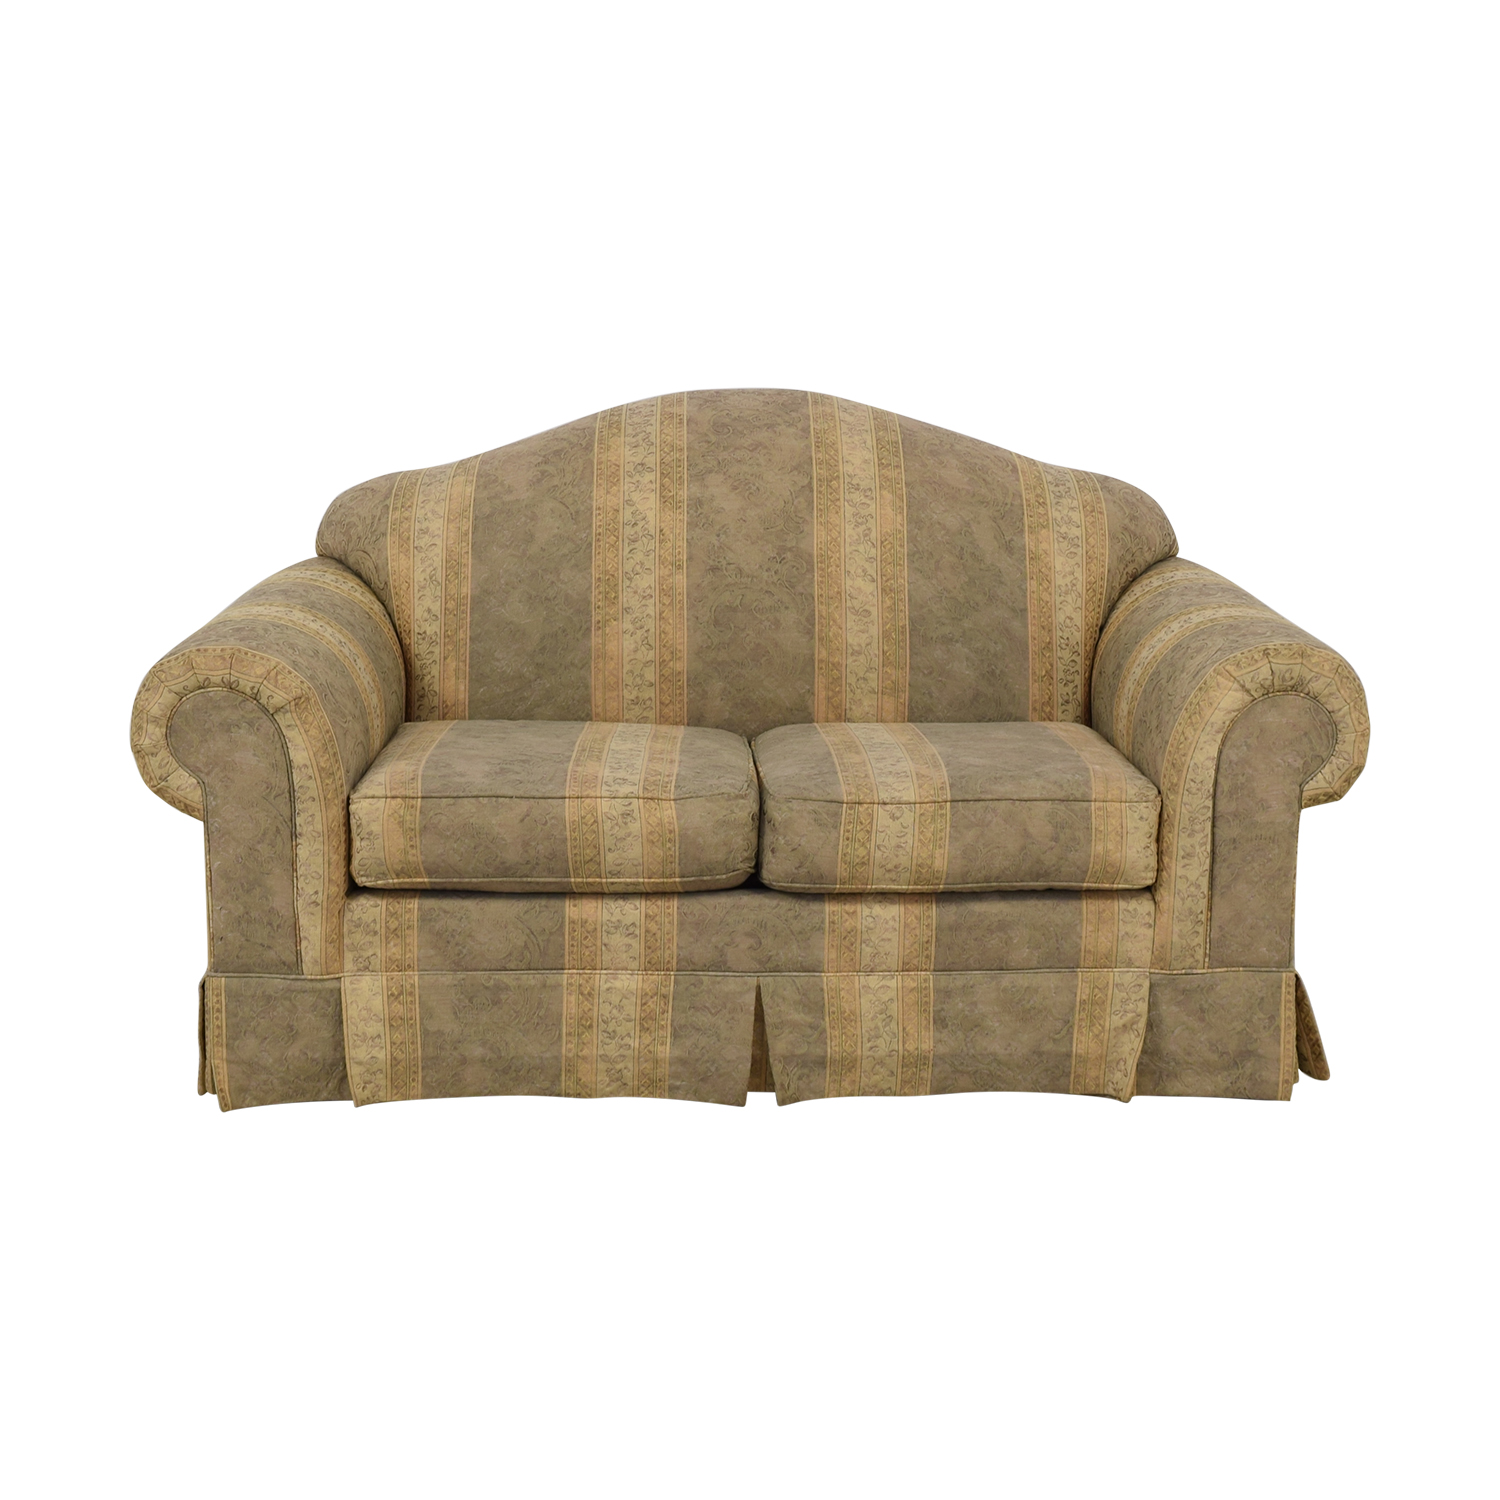 buy Thomasville Impressions Regency Style Loveseat Thomasville